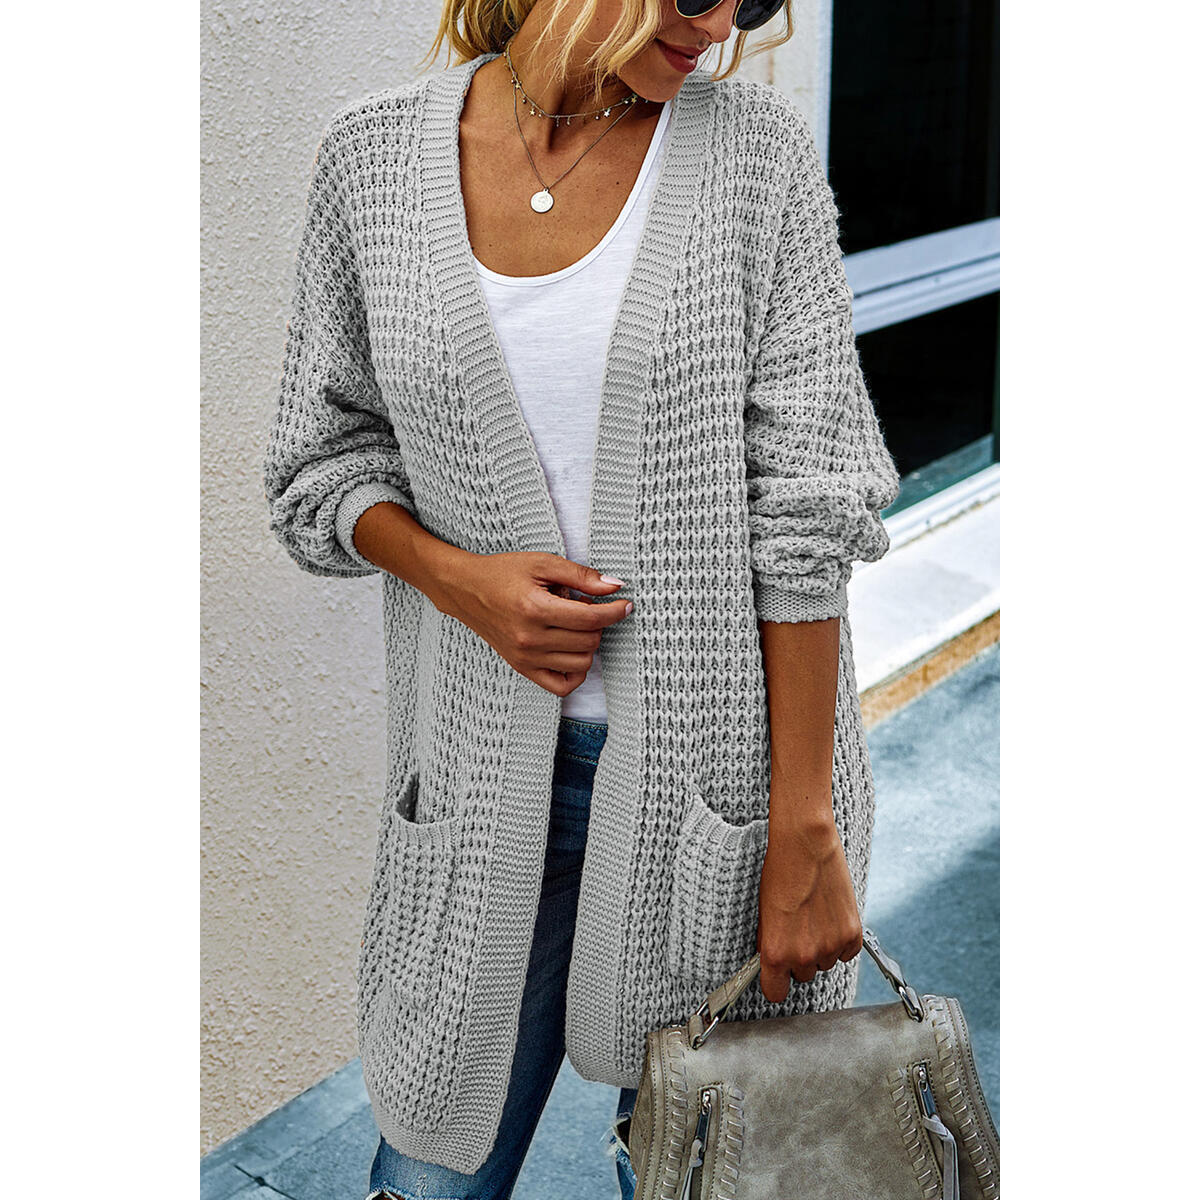 Alelly Womens Open Front Cardigan Long Sleeve Chunky Sweater, Knit Sweaters Coat All Colors